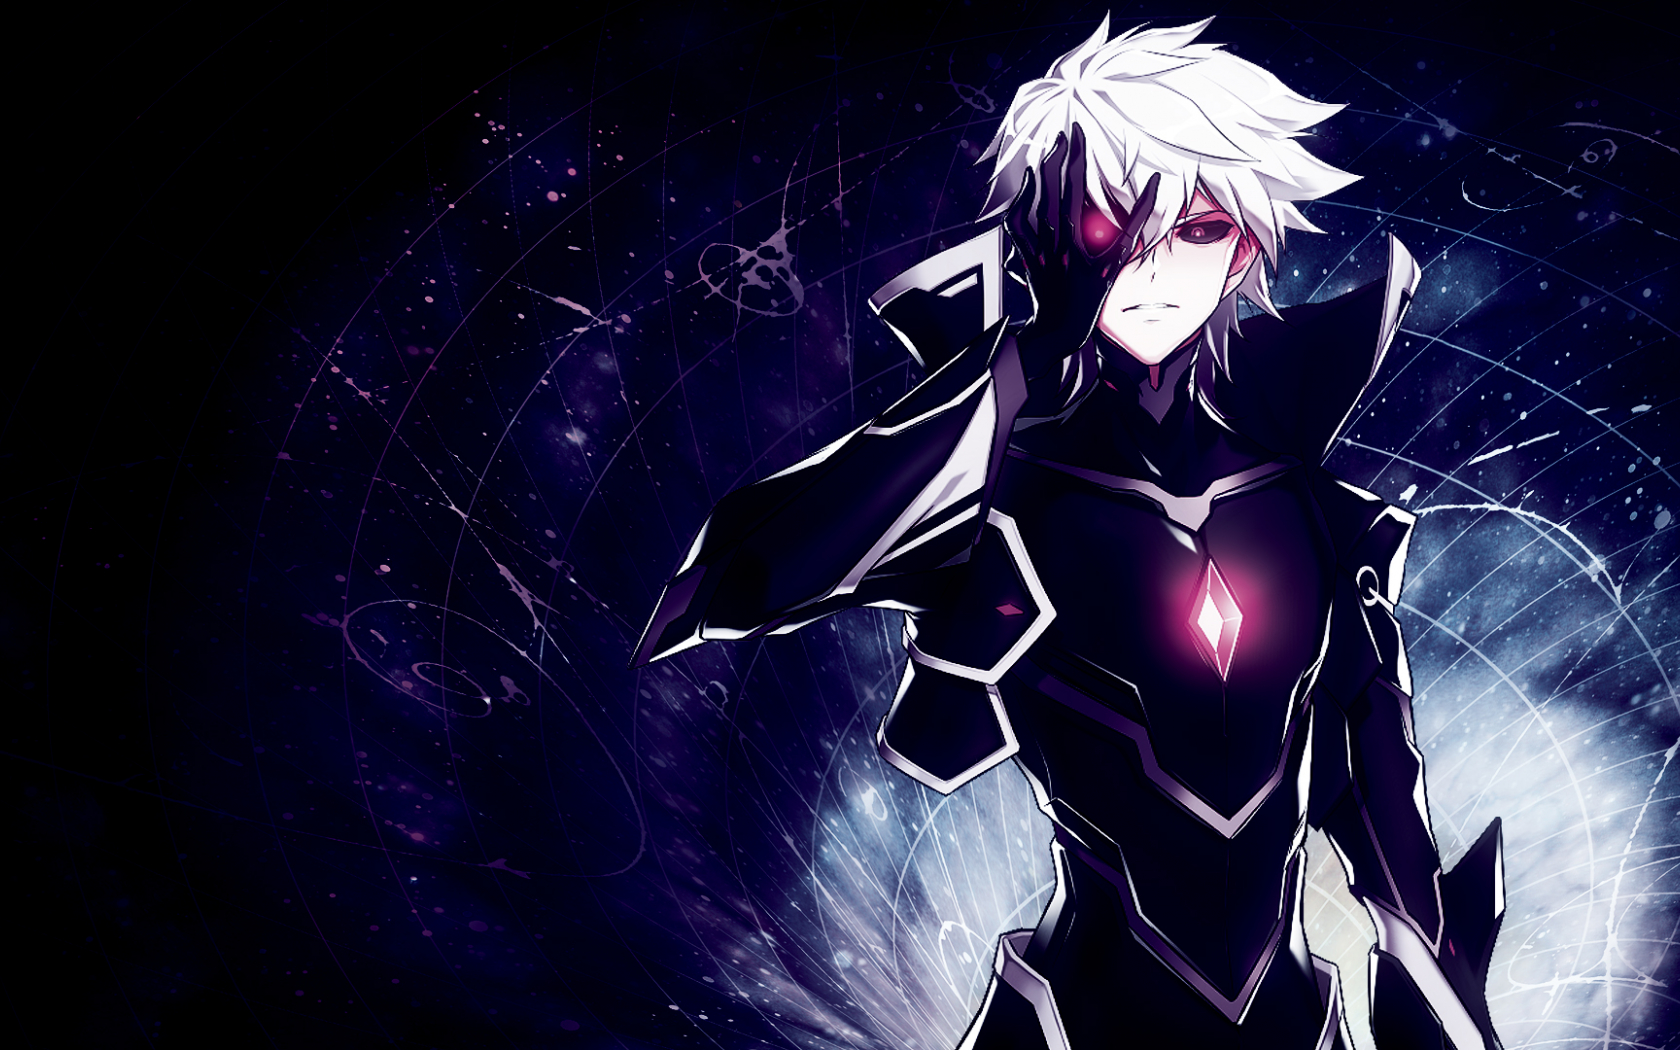 Free Download 1920x1080px Elsword Wallpaper 1920x1080 For Your